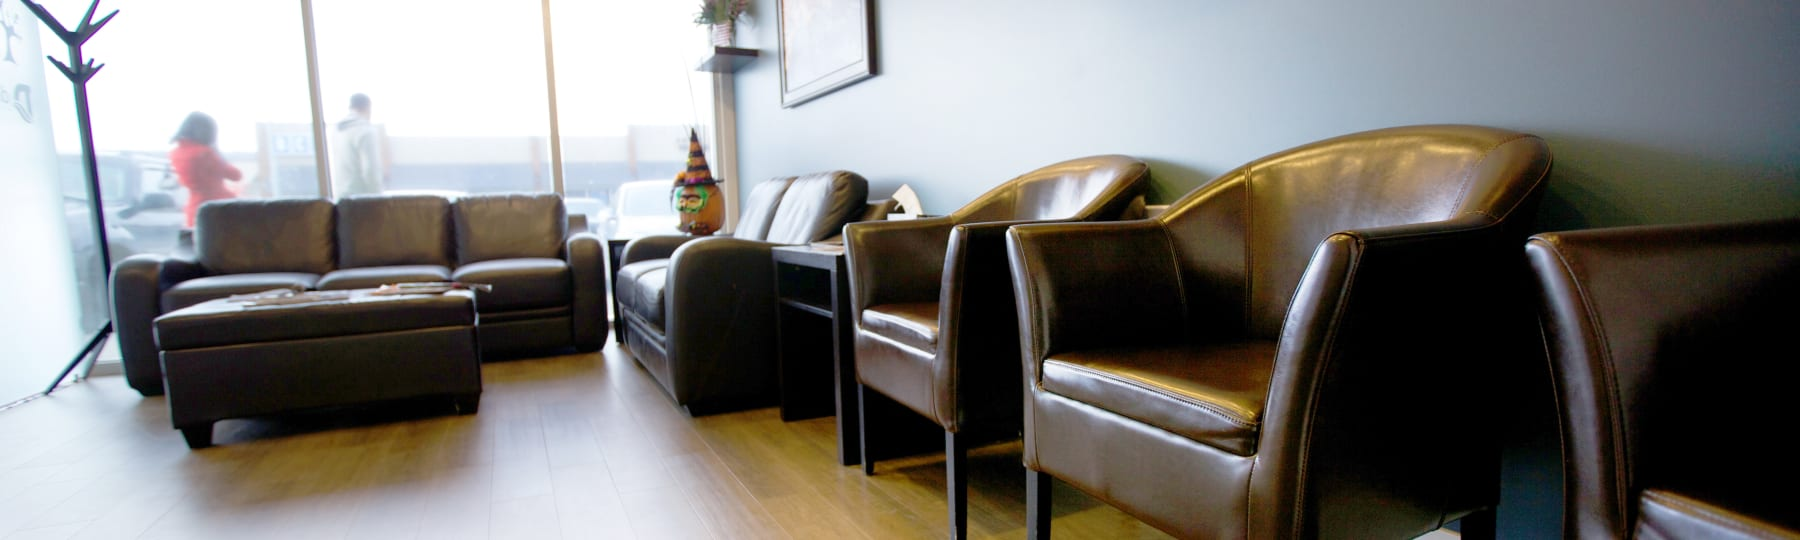 River Point, Prince George Dentist